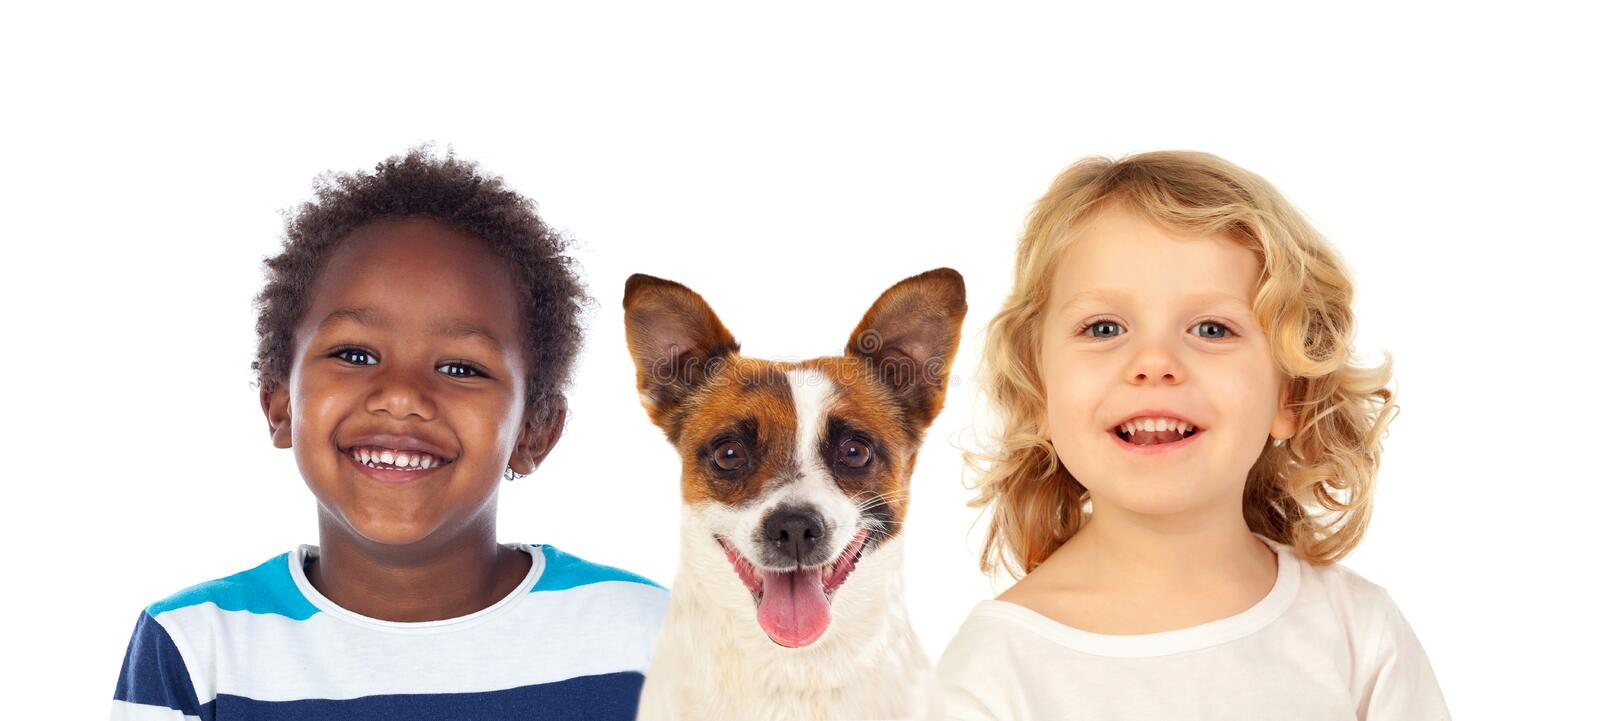 Portrait of two children with a dog stock photos